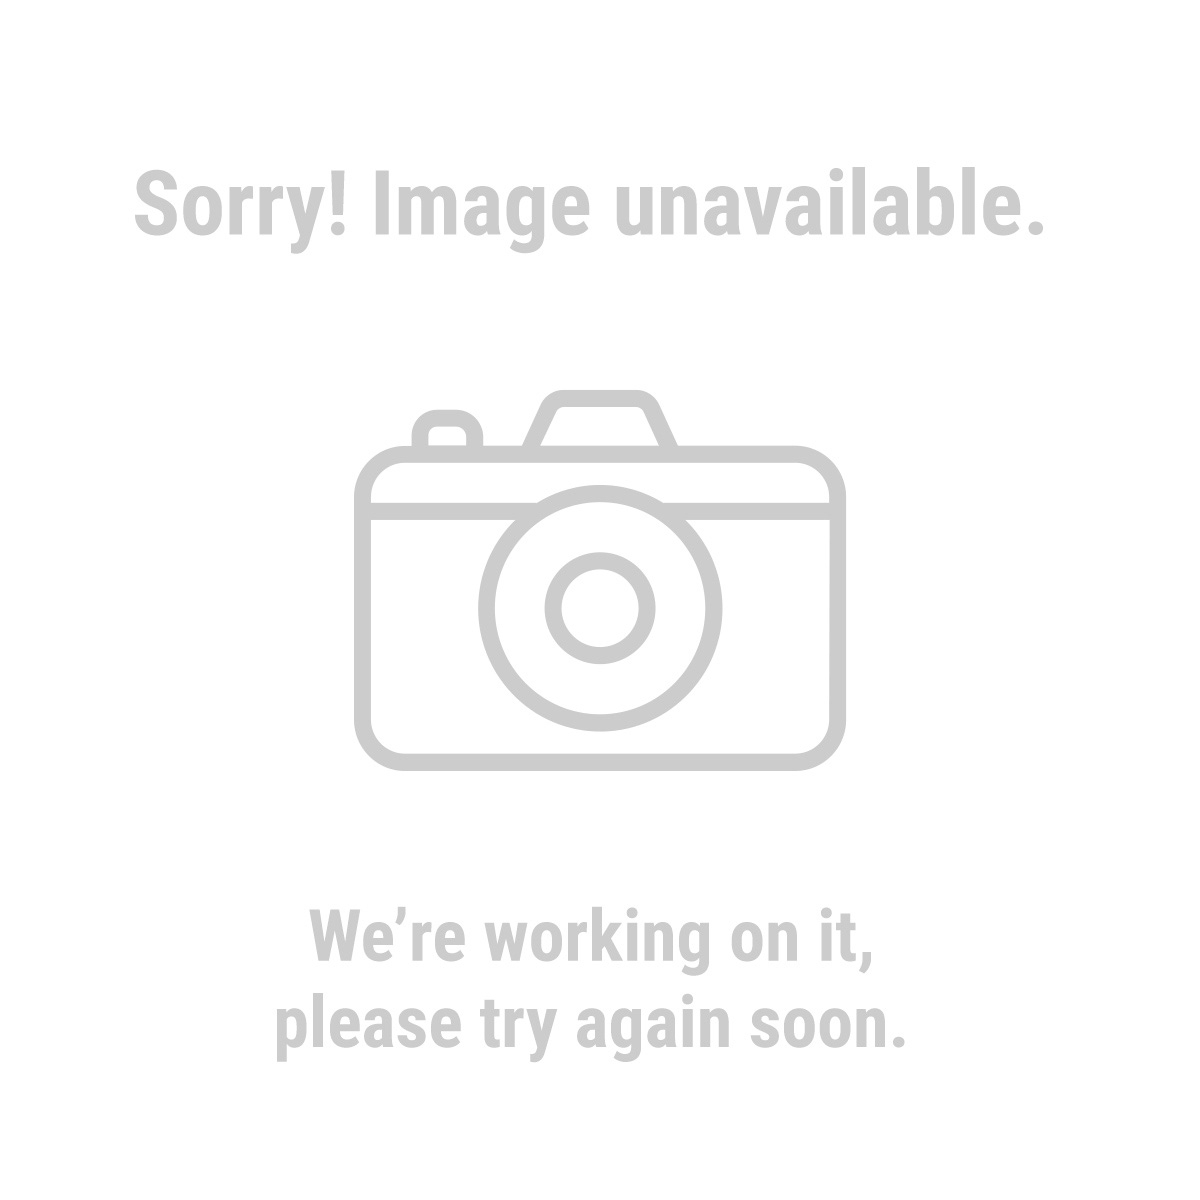 Chicago Electric 94777 800 Watt/400 Watt Parabolic Heater